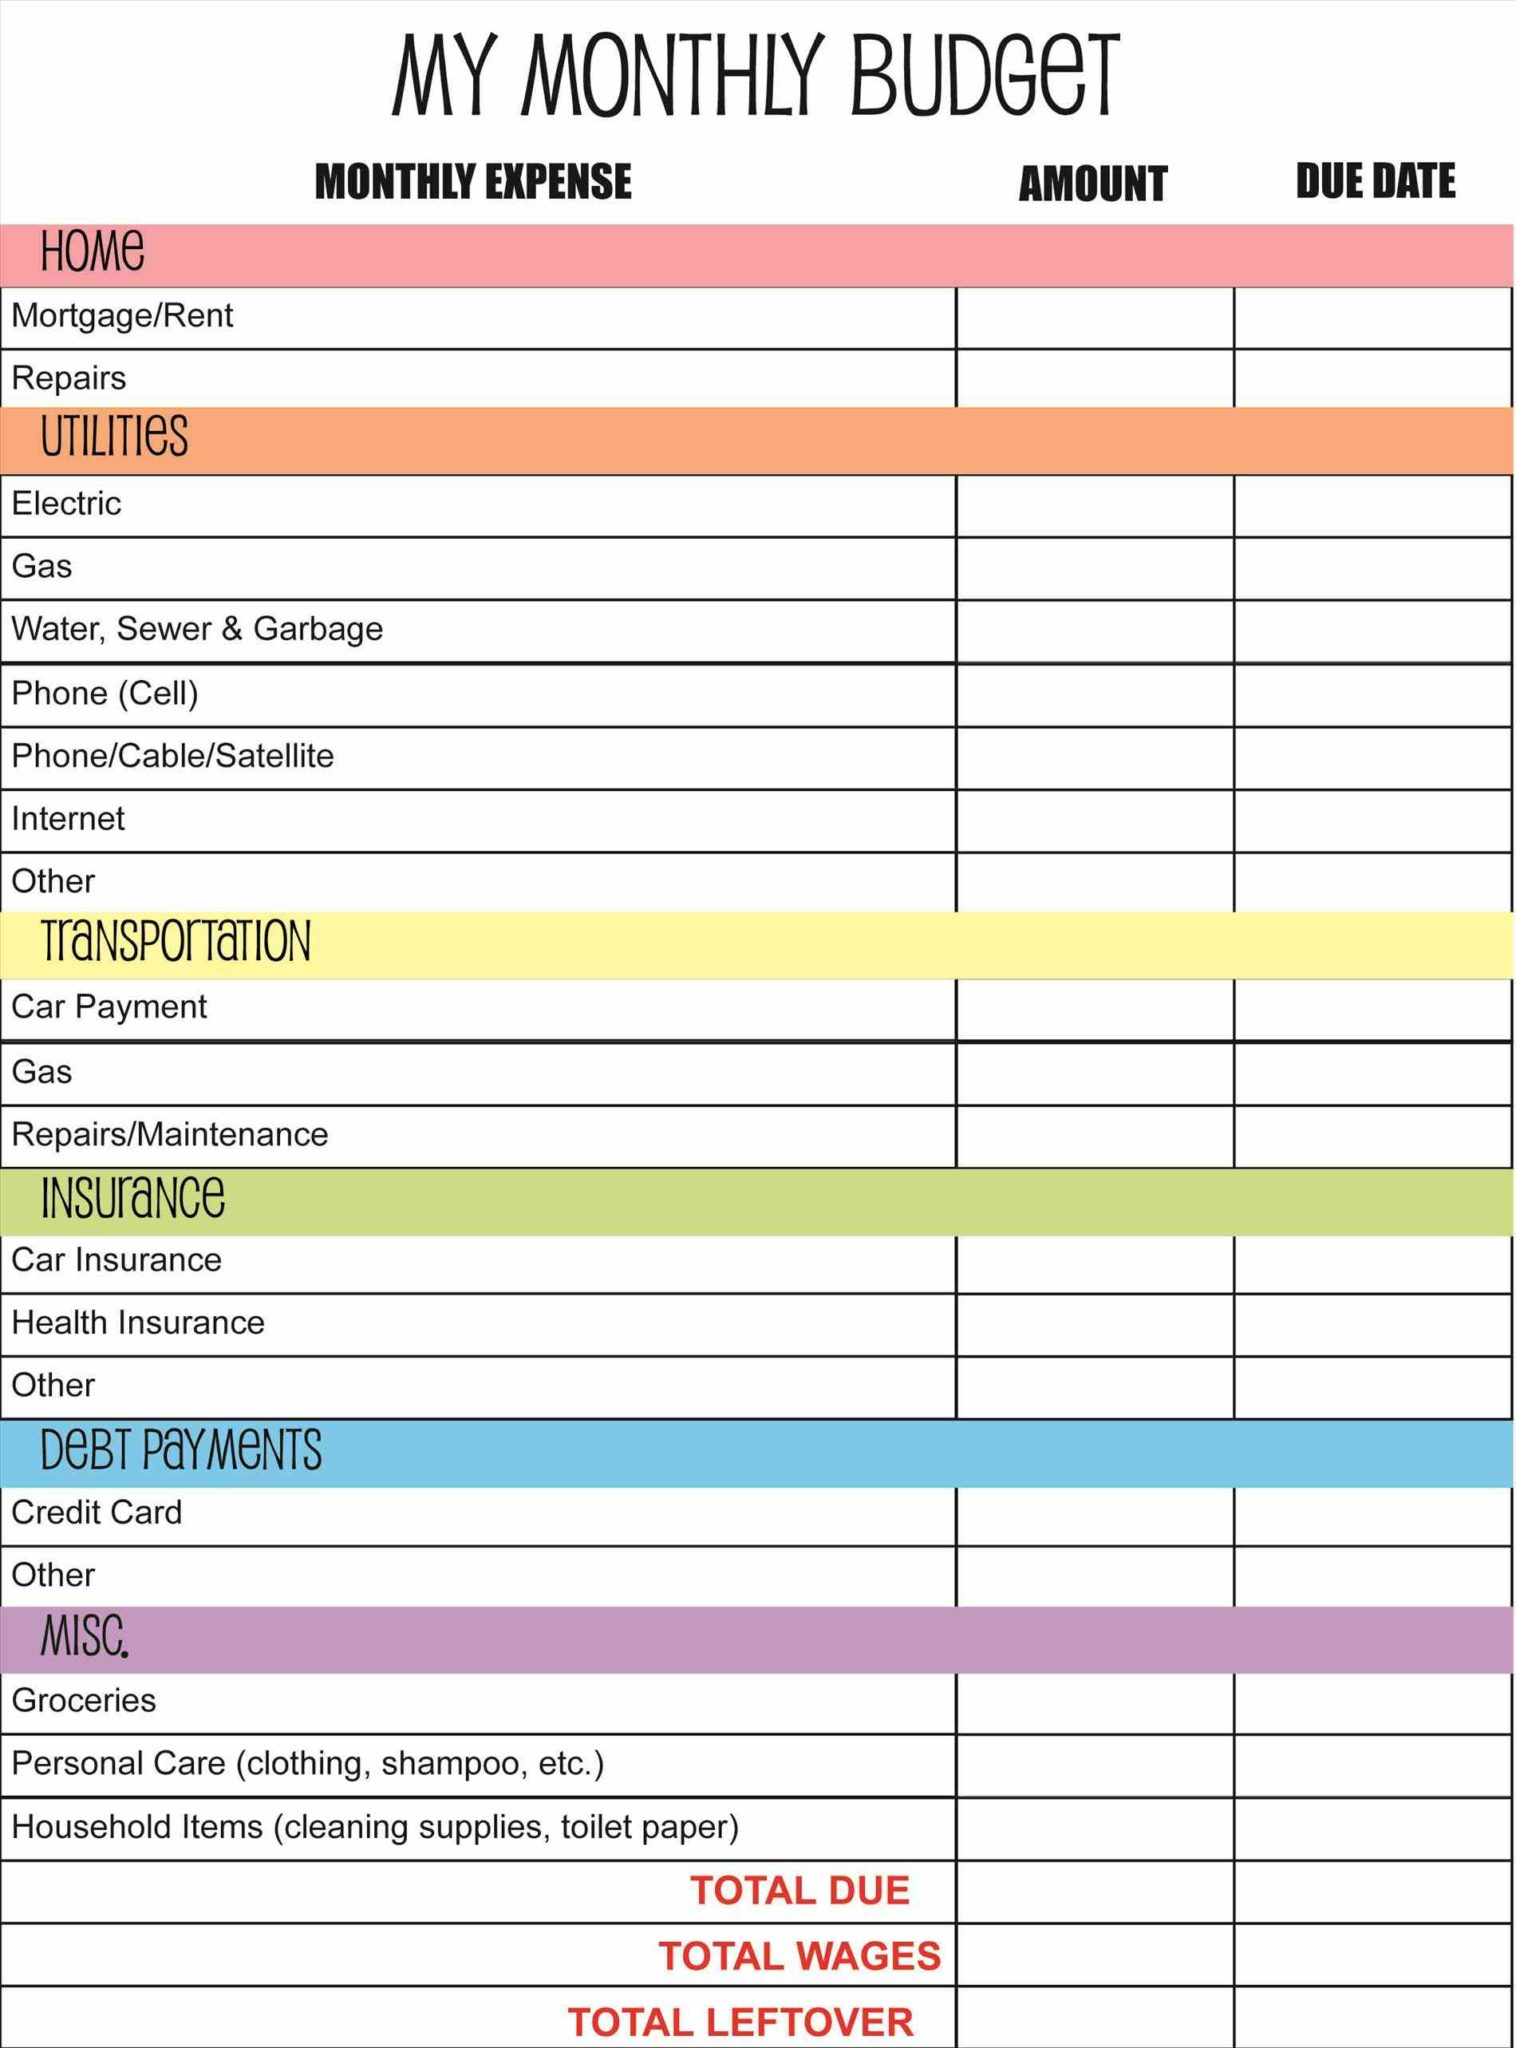 Financial services business plan template free